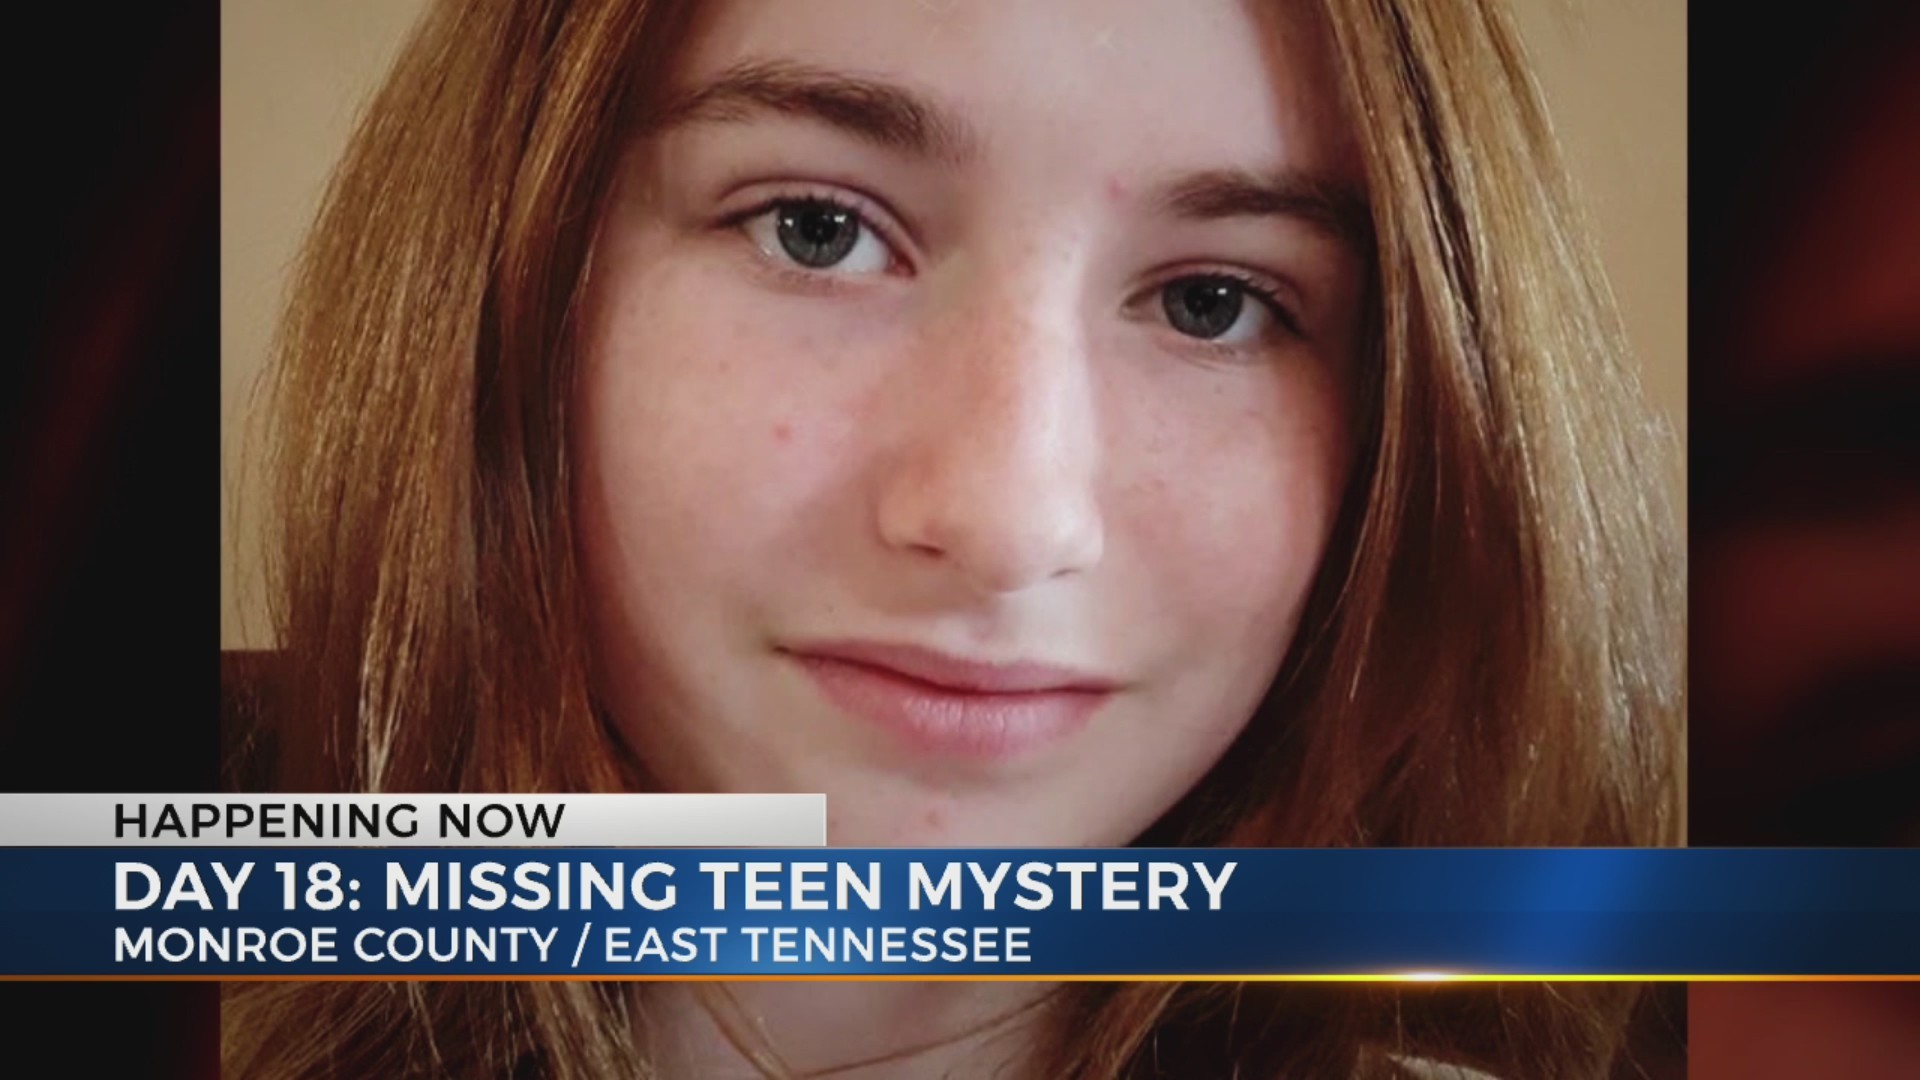 Arrest made in case of missing Tennessee teen Savannah Pruitt